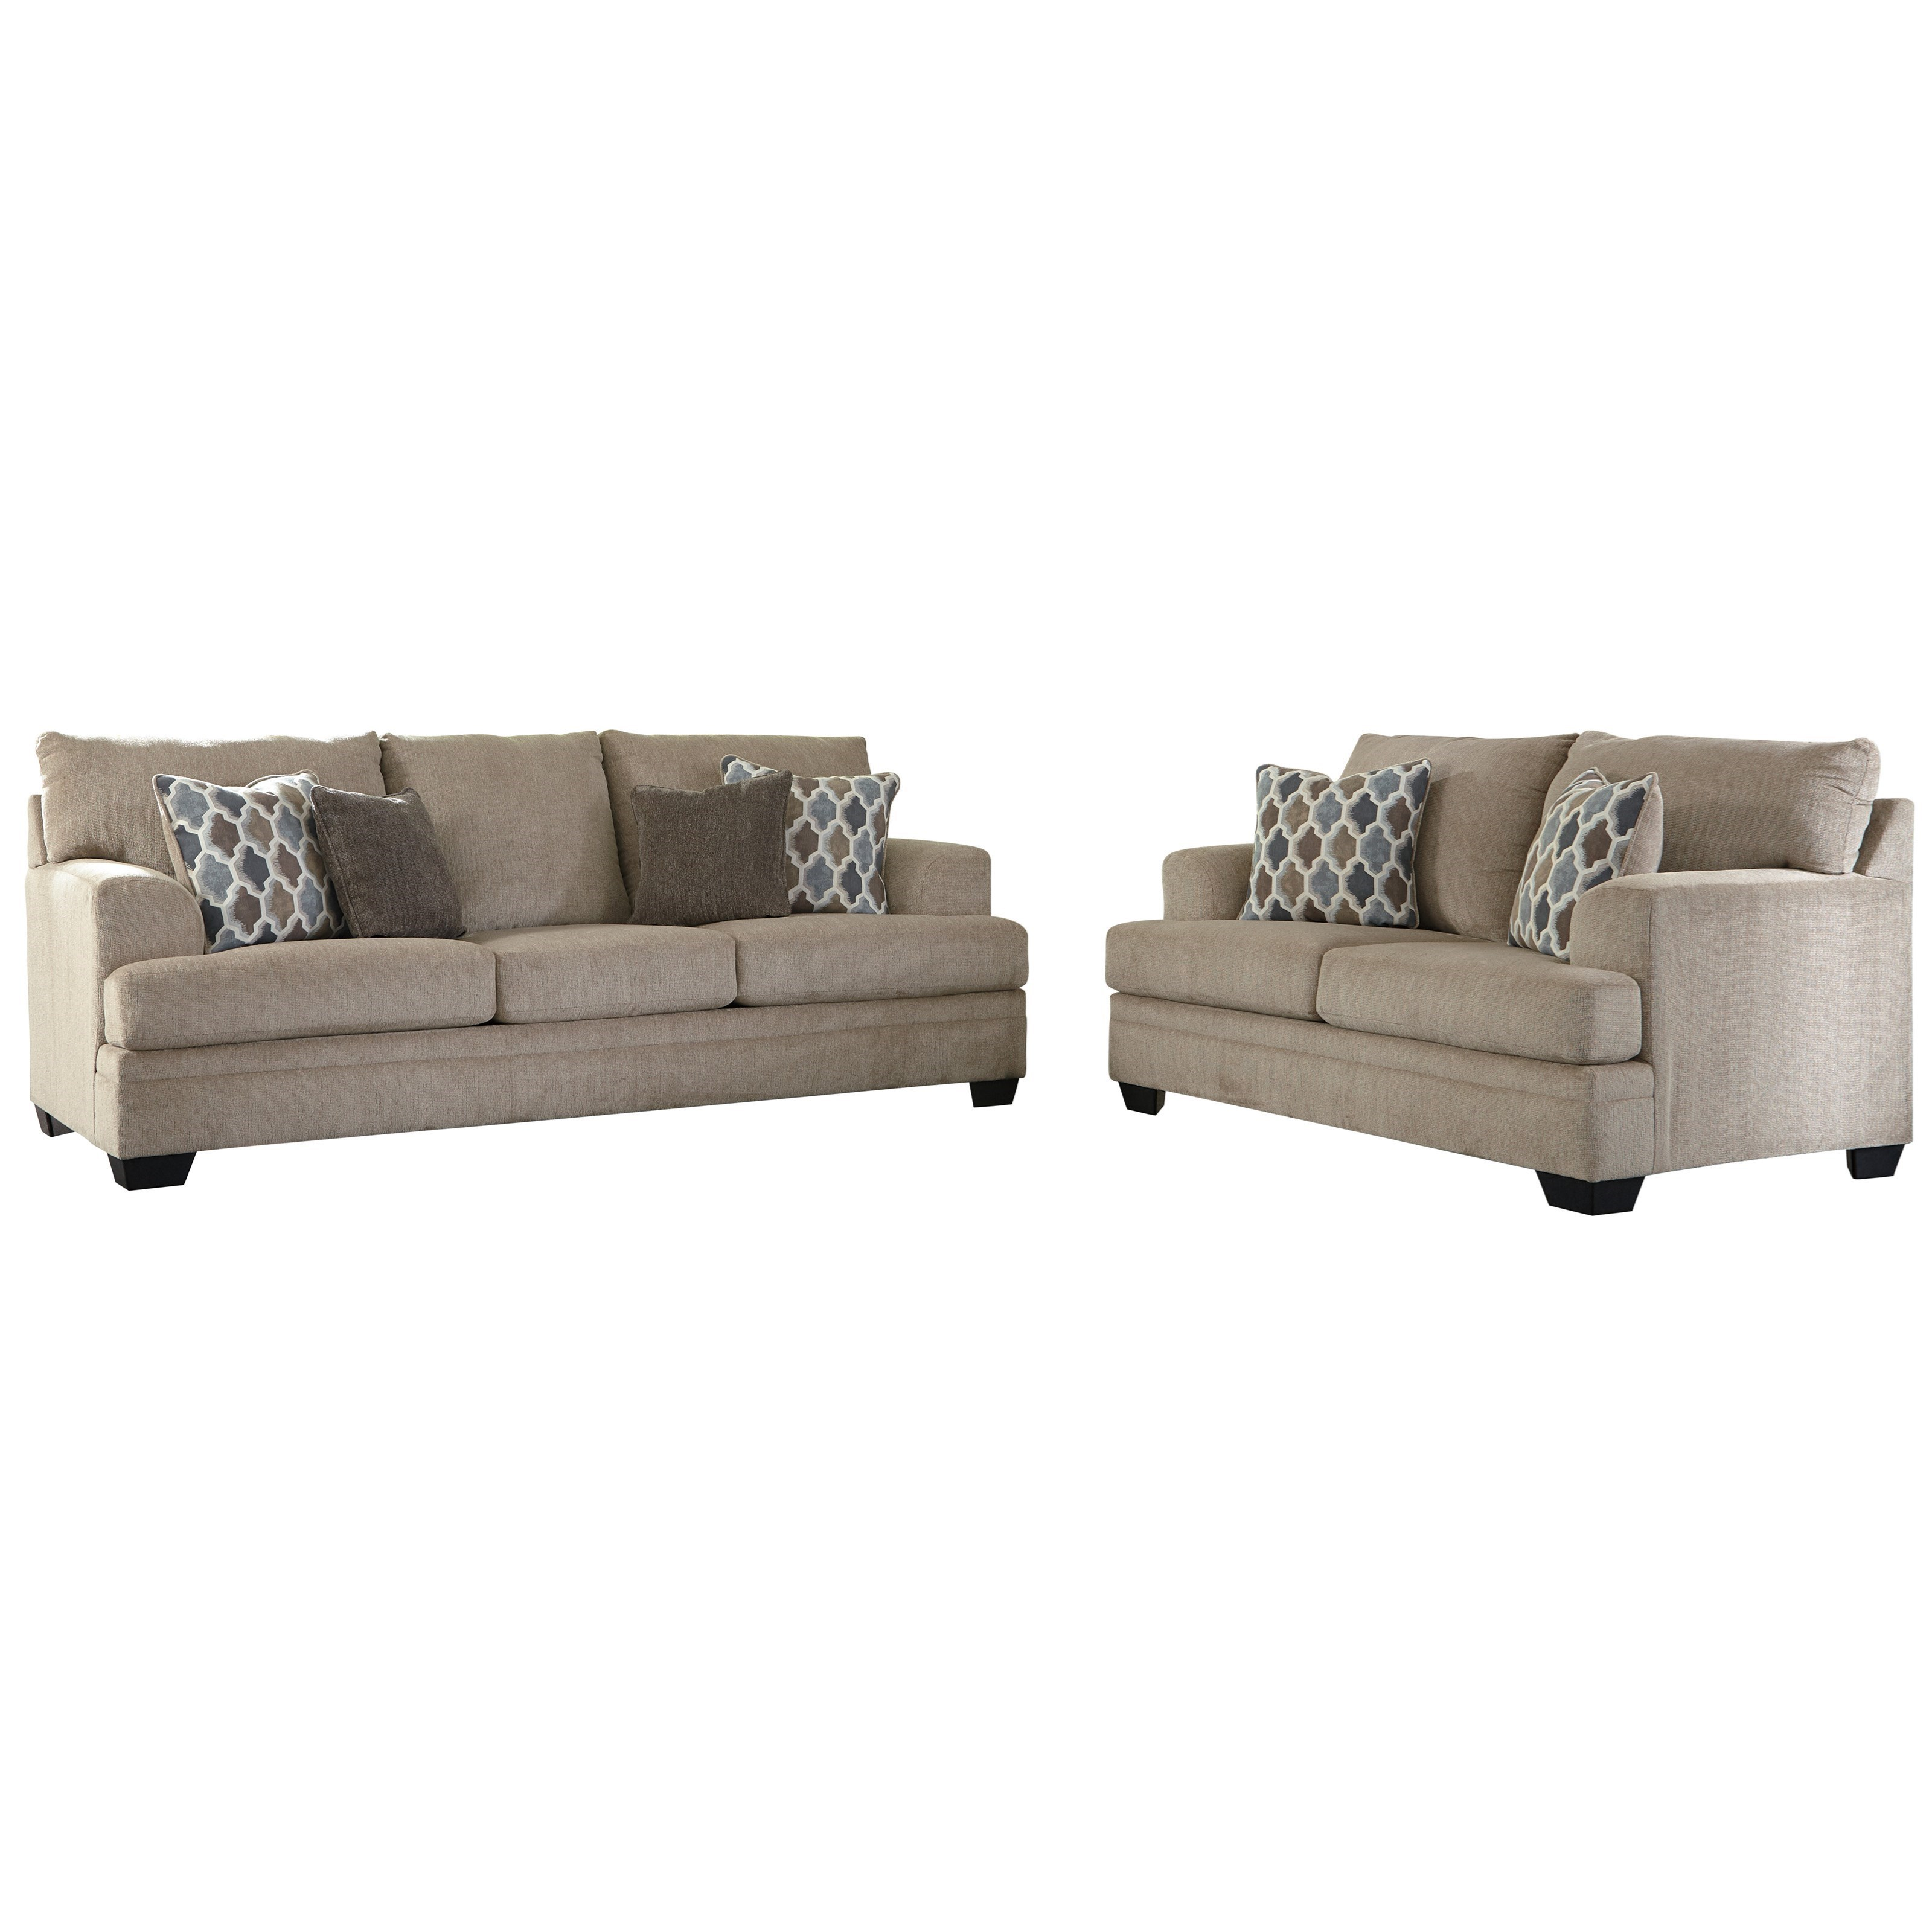 Dorsten Stationary Living Room Group by Signature Design by Ashley at Miller Waldrop Furniture and Decor